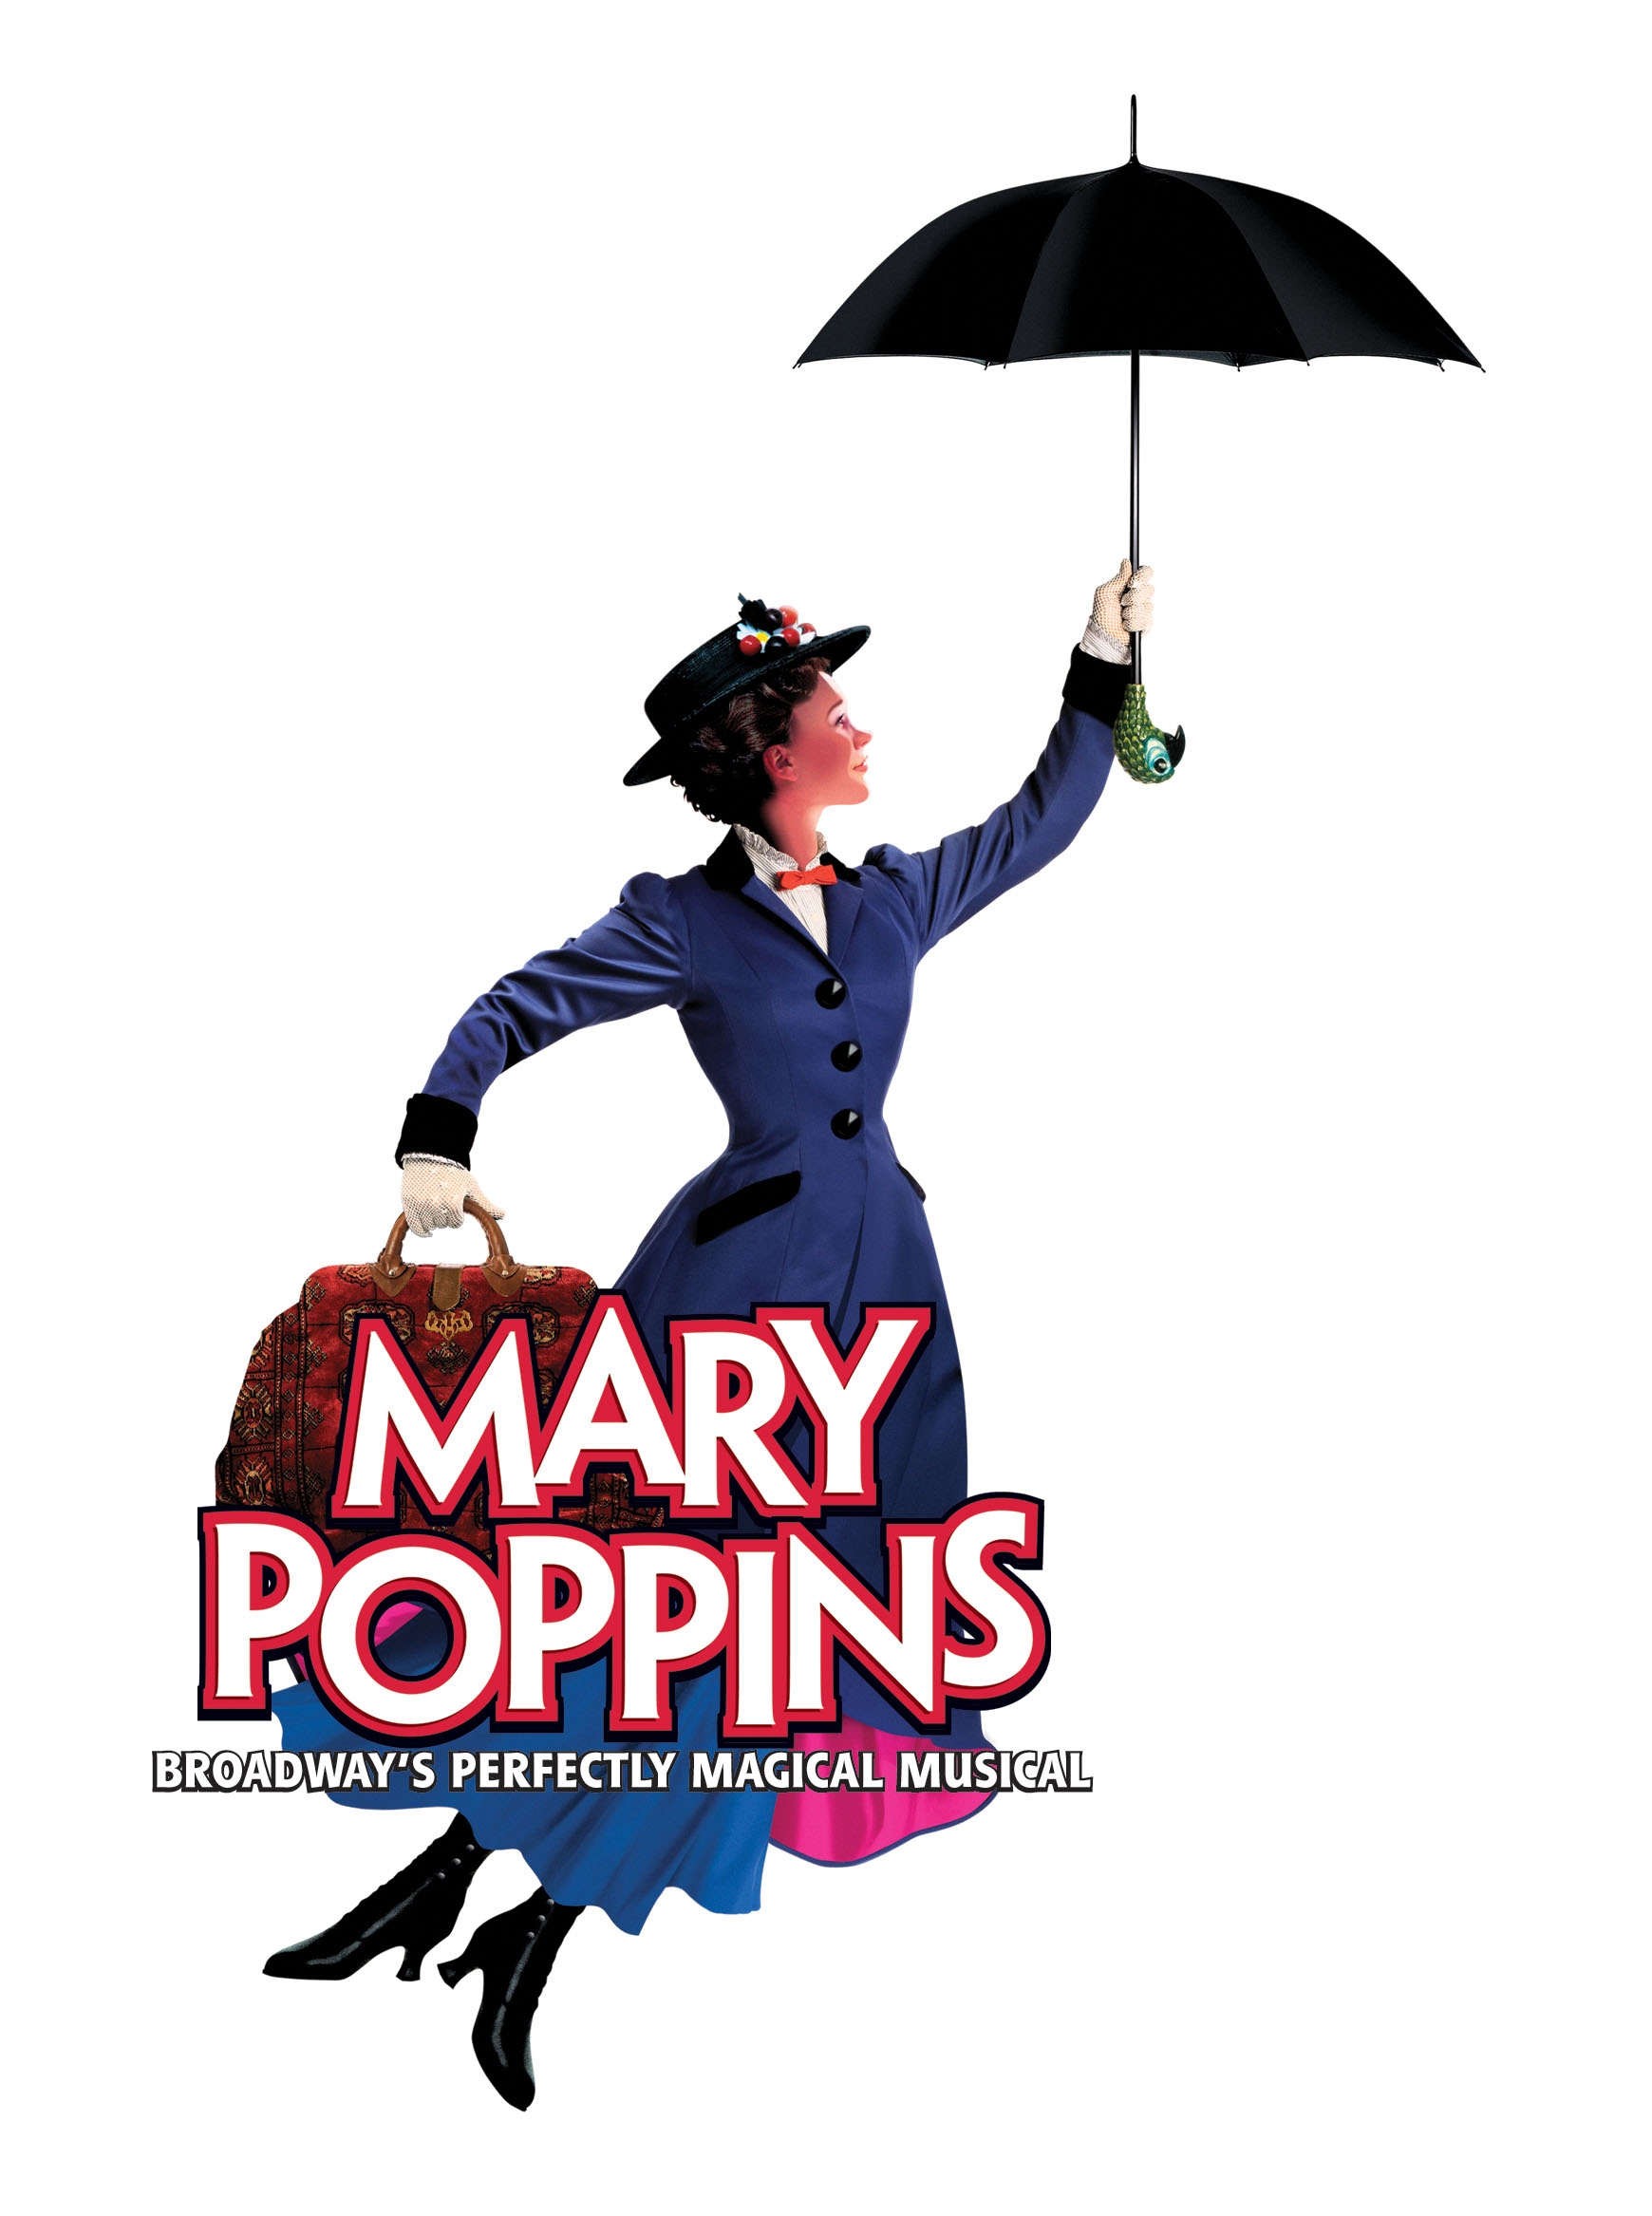 Regarder le film Mary Poppins en streaming VF